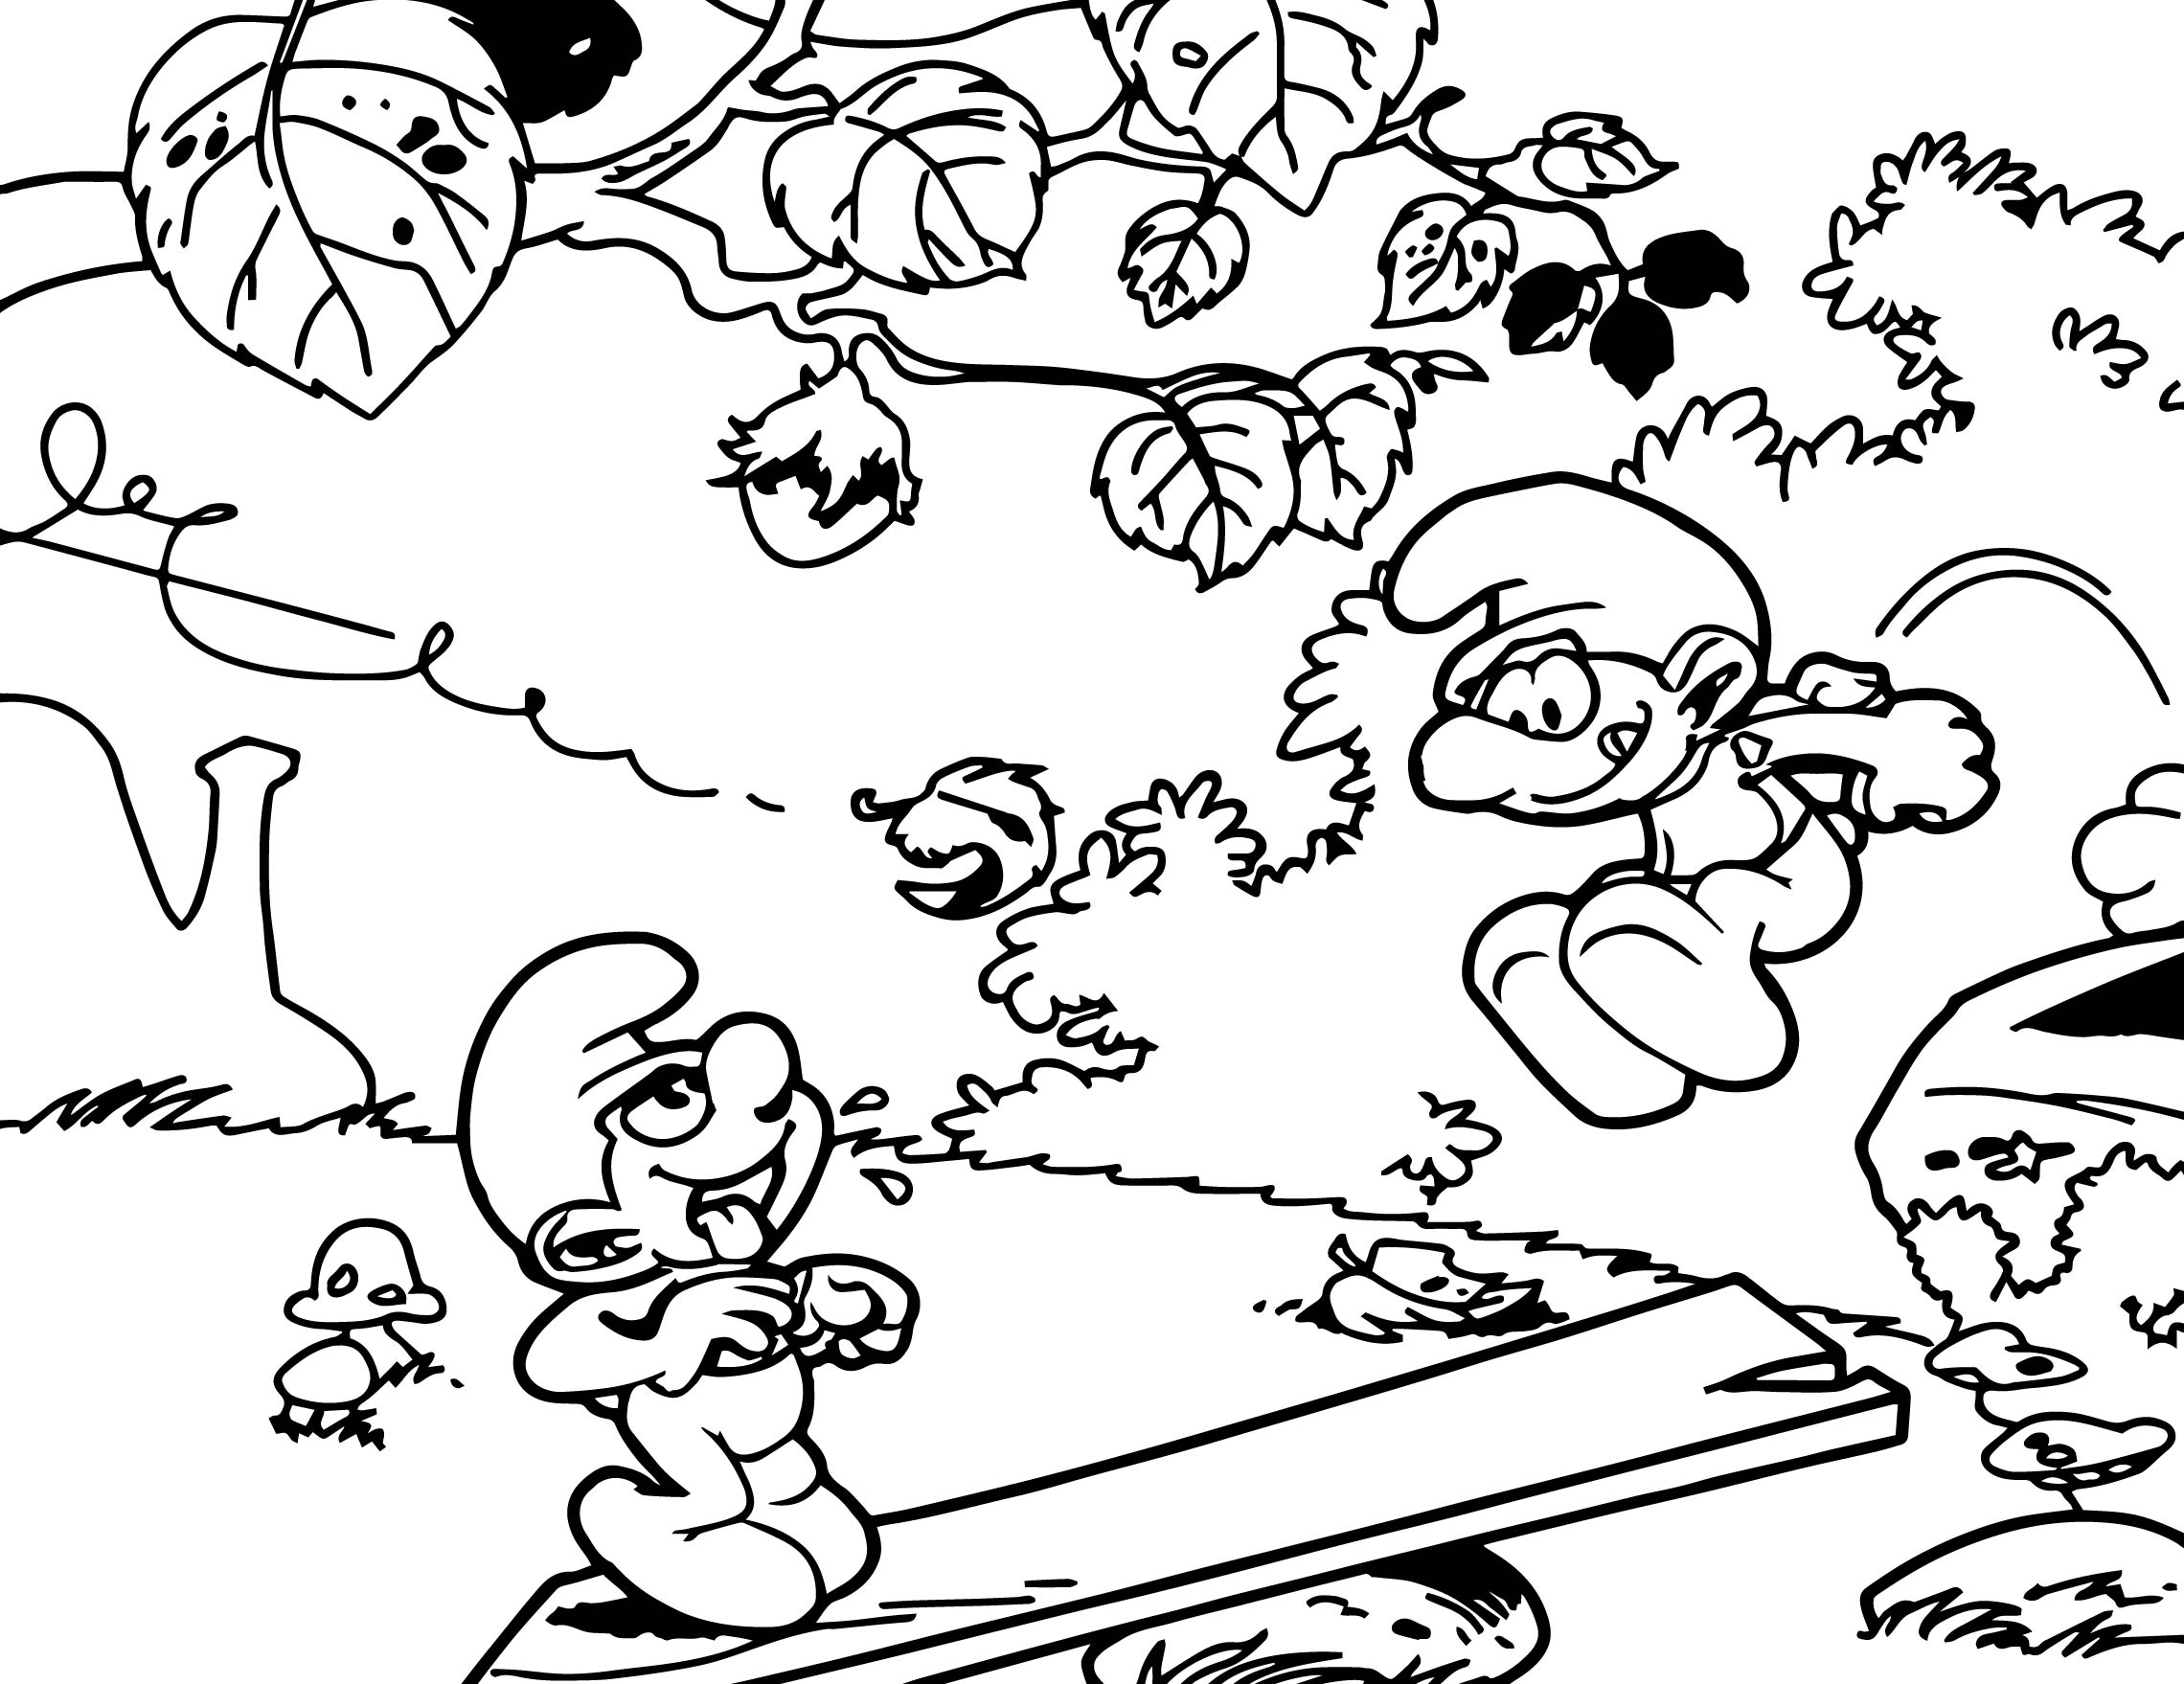 Colouring in pages smurfs - Autumn Smurfs Coloring Pages